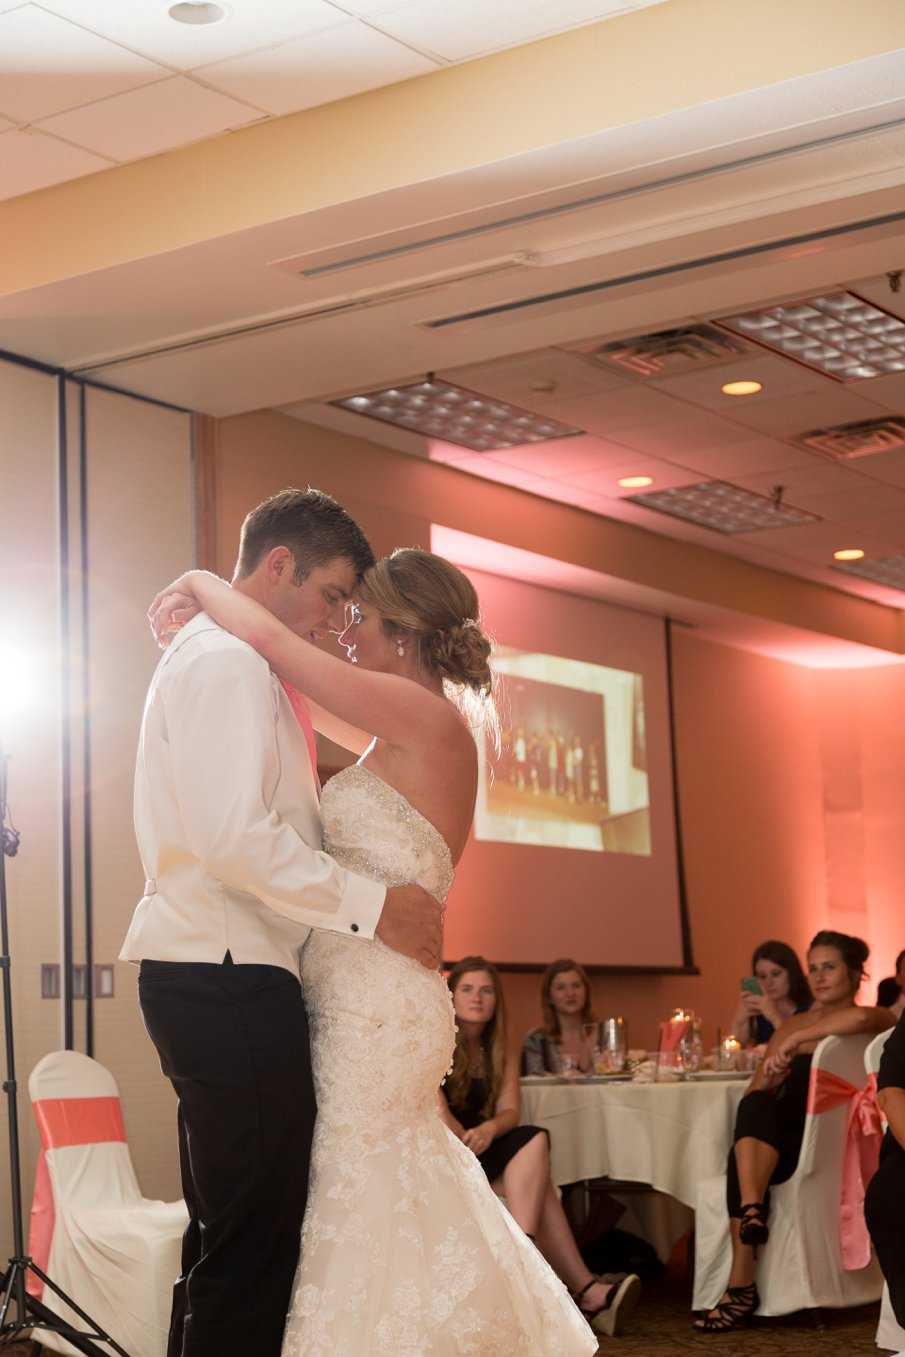 Alice Hq Photography |Courtney + Tyler Mankato MN Wedding19.jpg